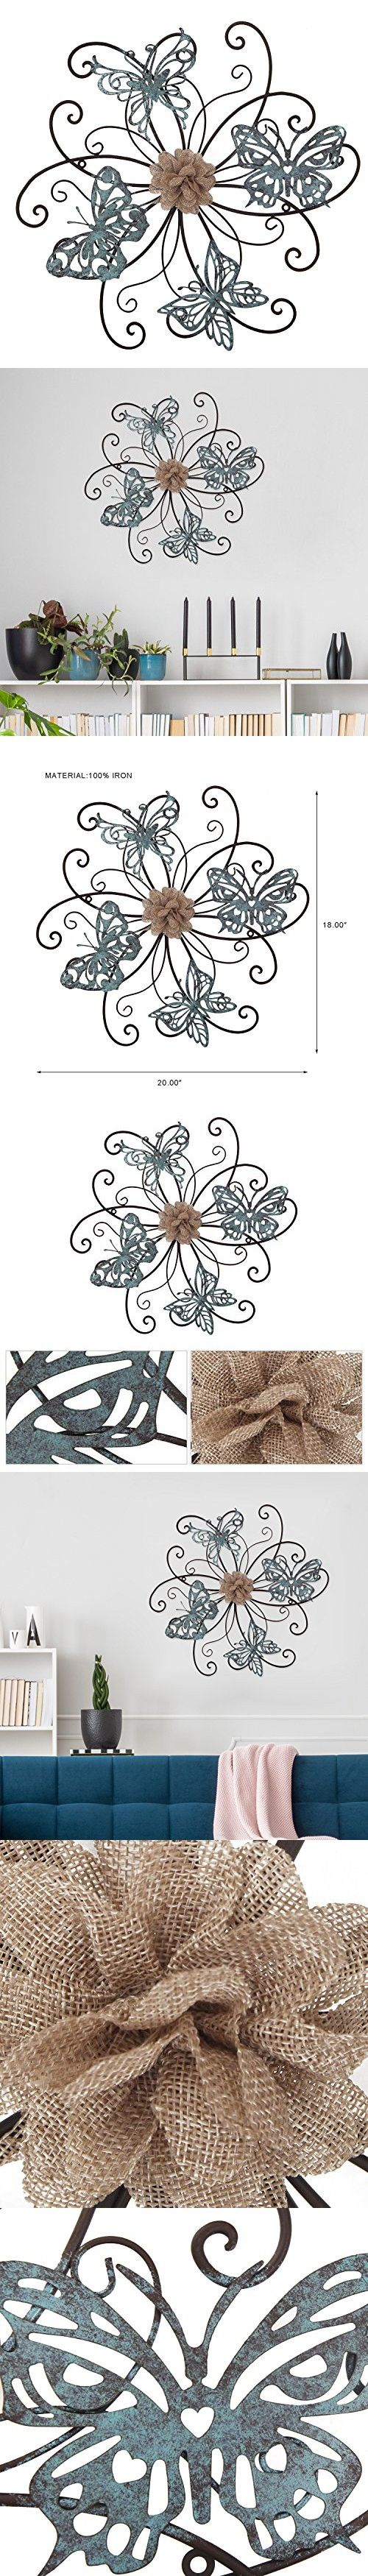 Home's Art Flower And Butterfly Urban Design Metal Wall Decor For With Newest Flower And Butterfly Urban Design Metal Wall Decor (View 13 of 20)